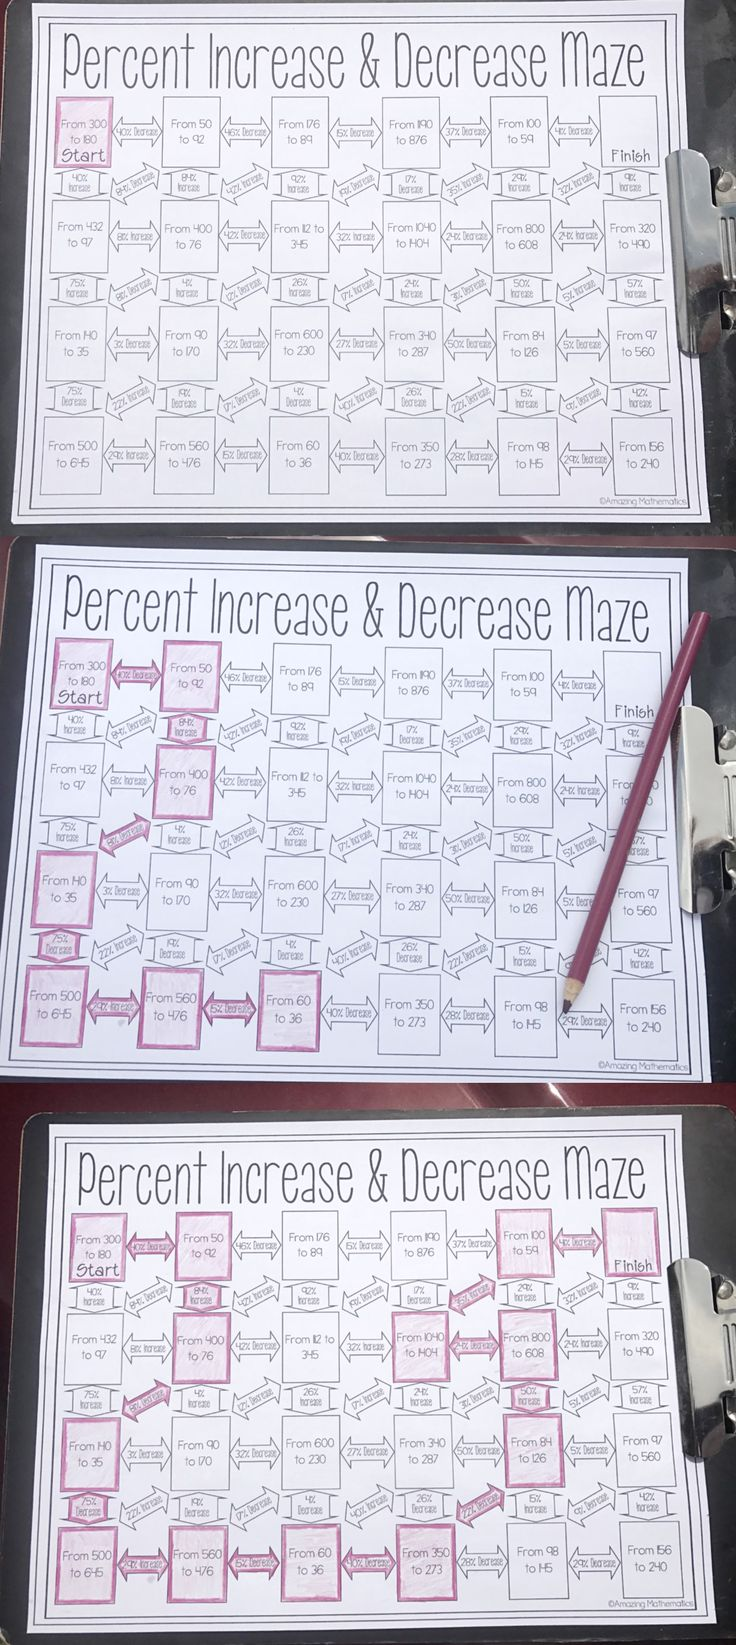 This was the perfect way for my 7th grade math students to practice finding percent increase and percent decrease. My students loved practicing calculating percent change by working their way through this fun middle school math worksheet. After my high school math students completed this math worksheet they were so much better at calculating percent increase, percent decrease, and percent change.